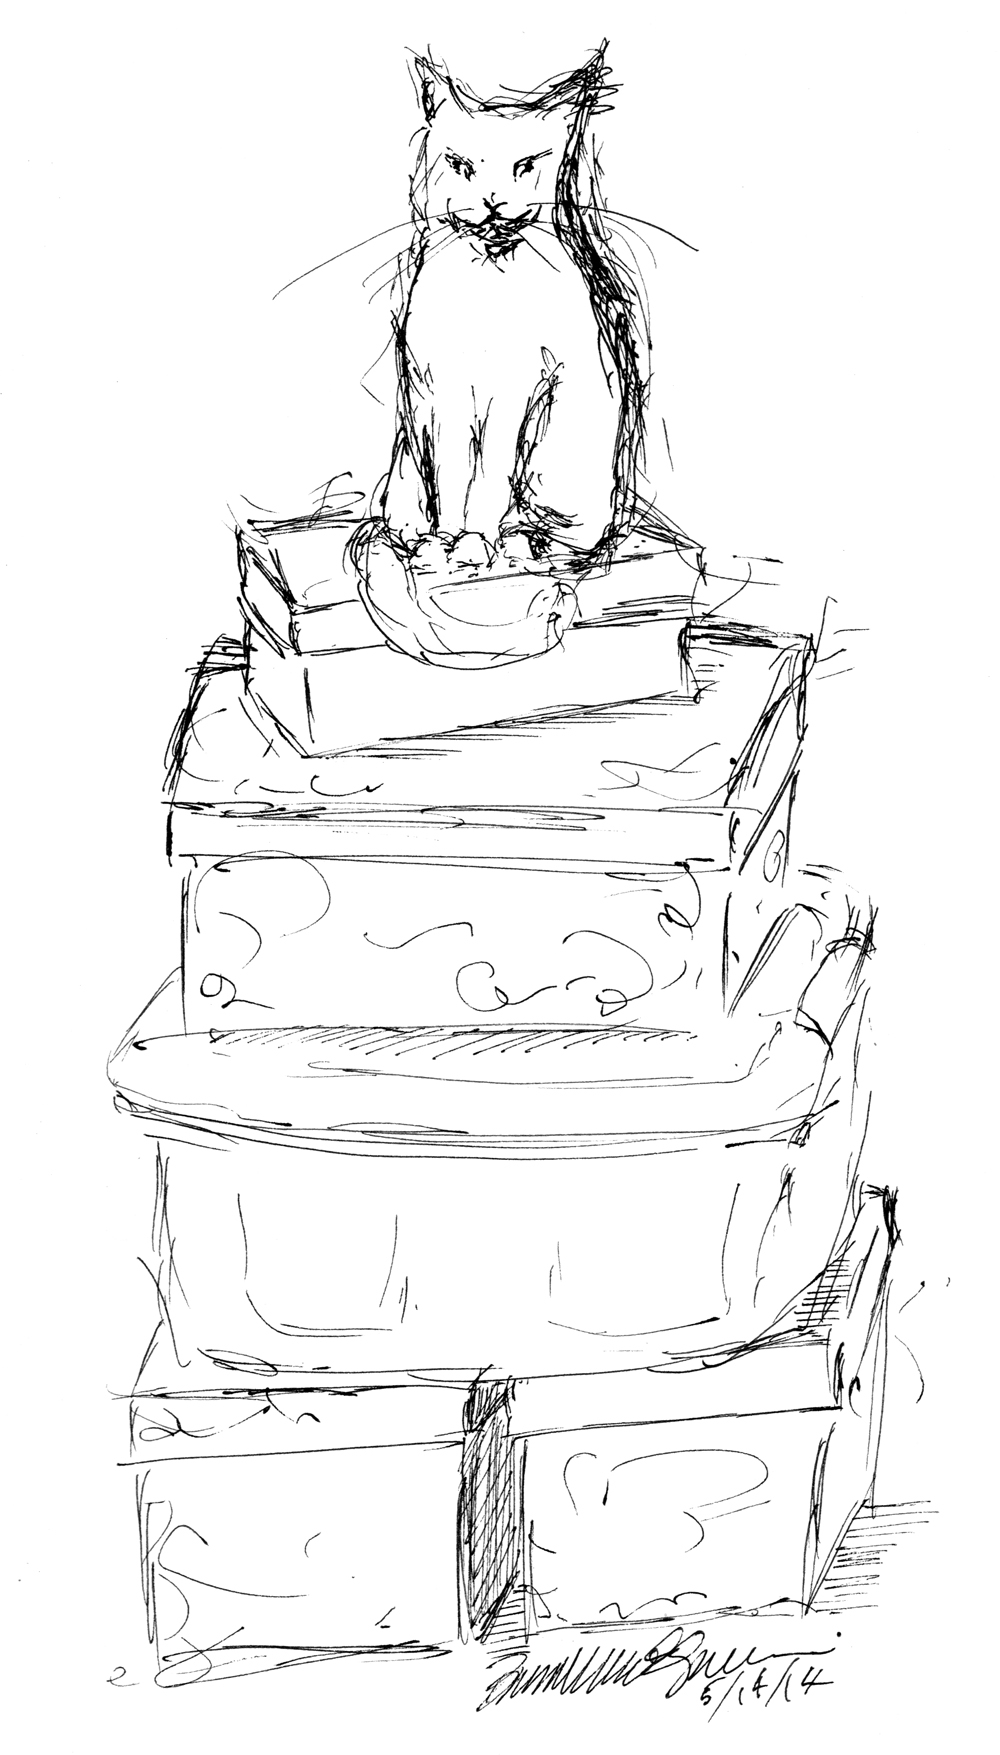 ink sketch of cat sitting on boxes